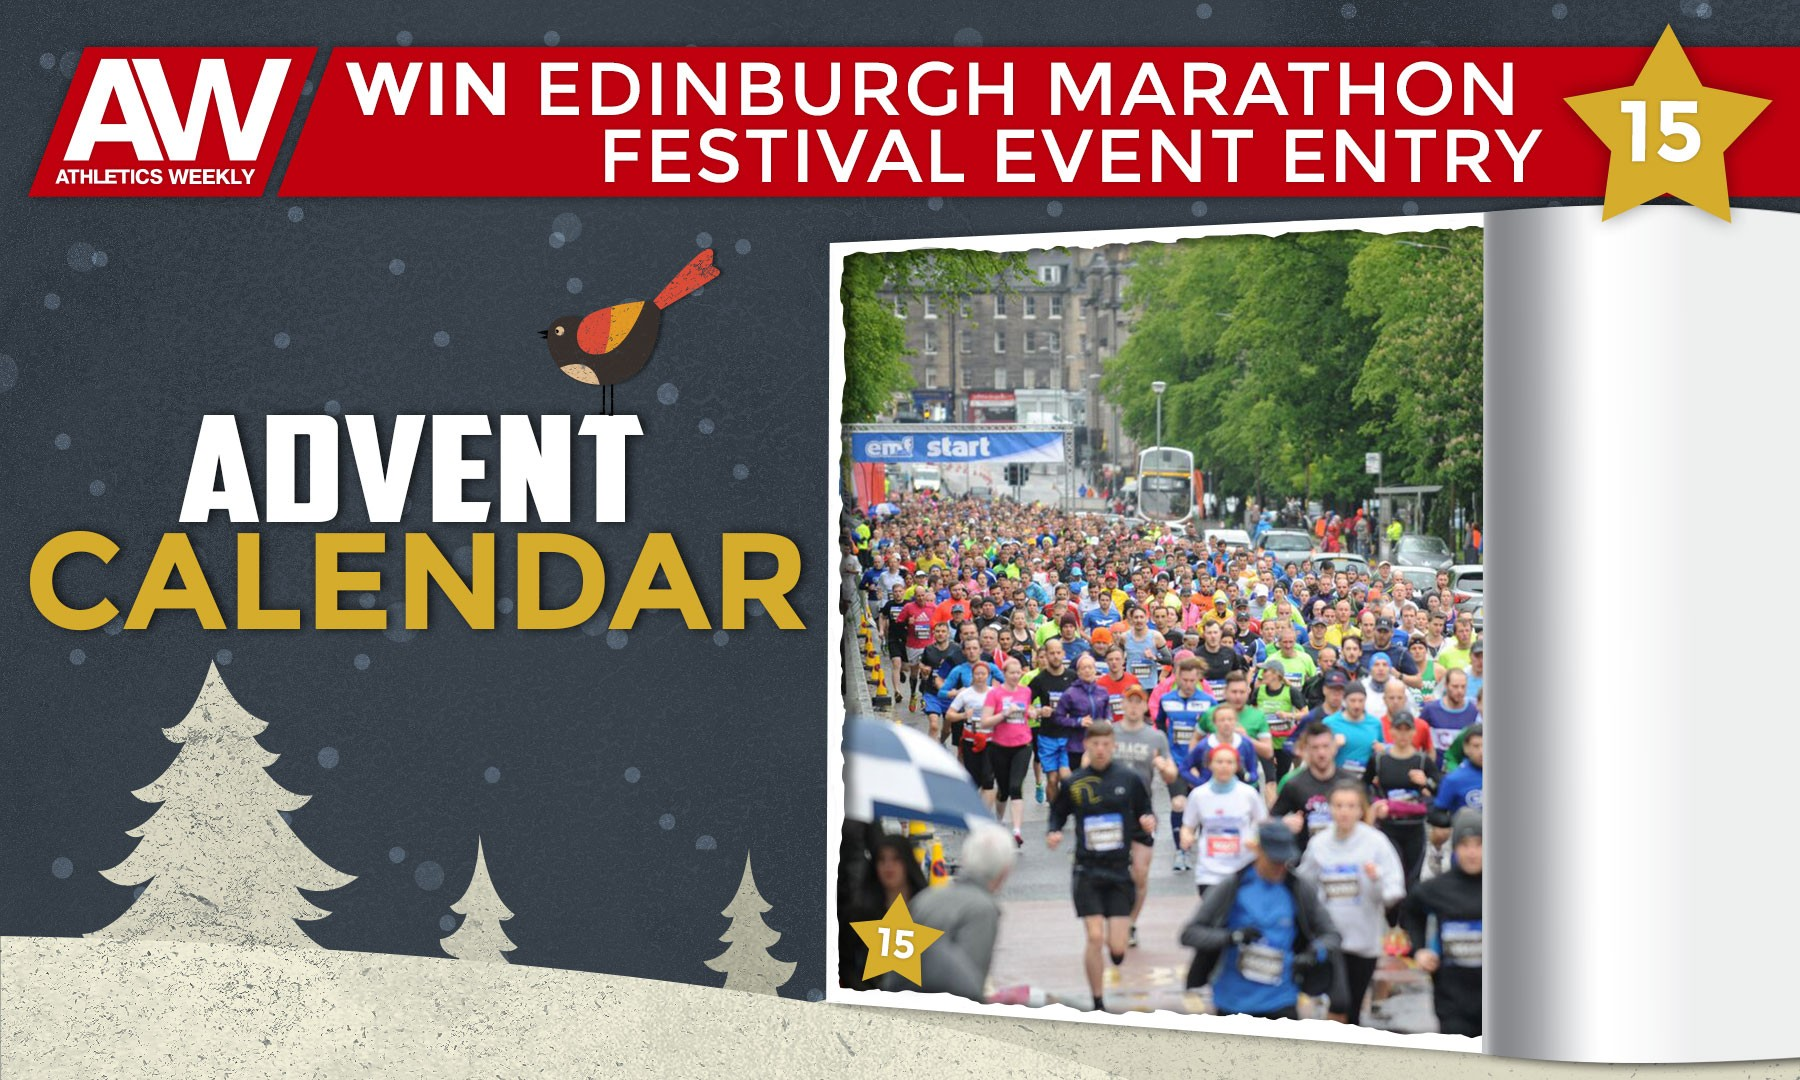 Win Edinburgh Marathon Festival event entry